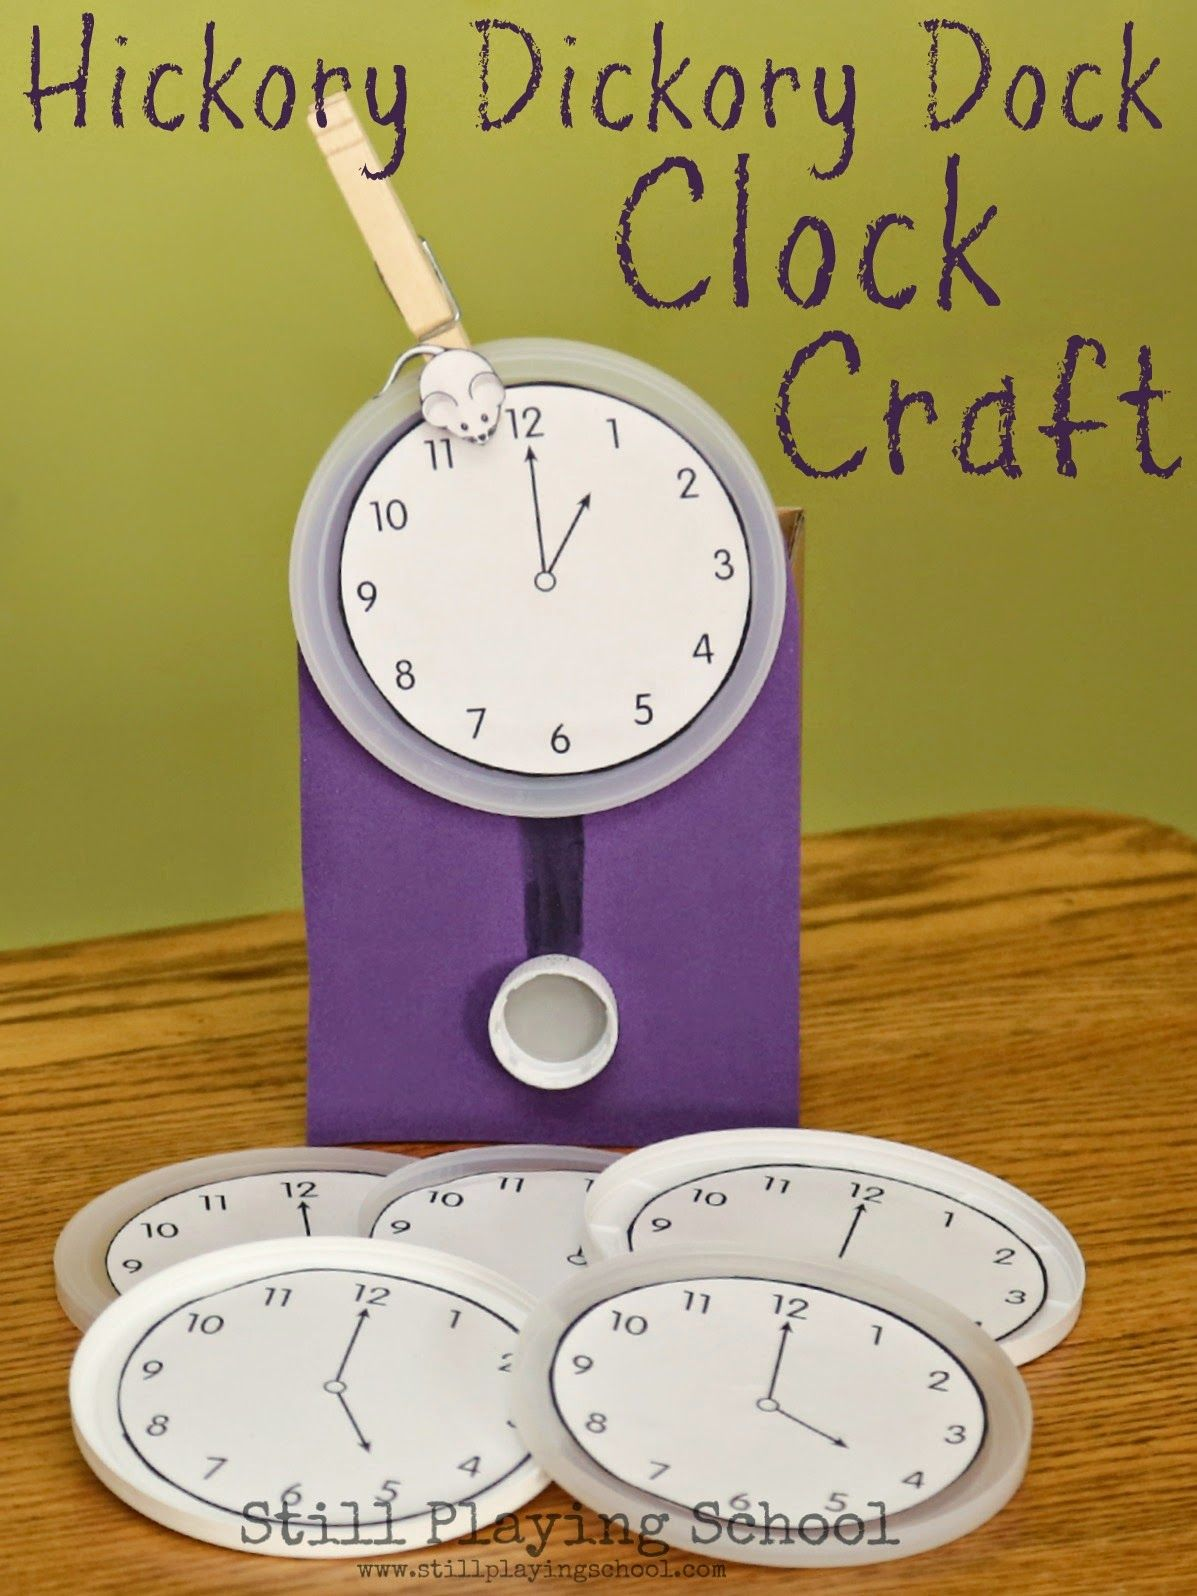 Hickory Dickory Dock Clock Craft Amp Time Telling Activity For Kids